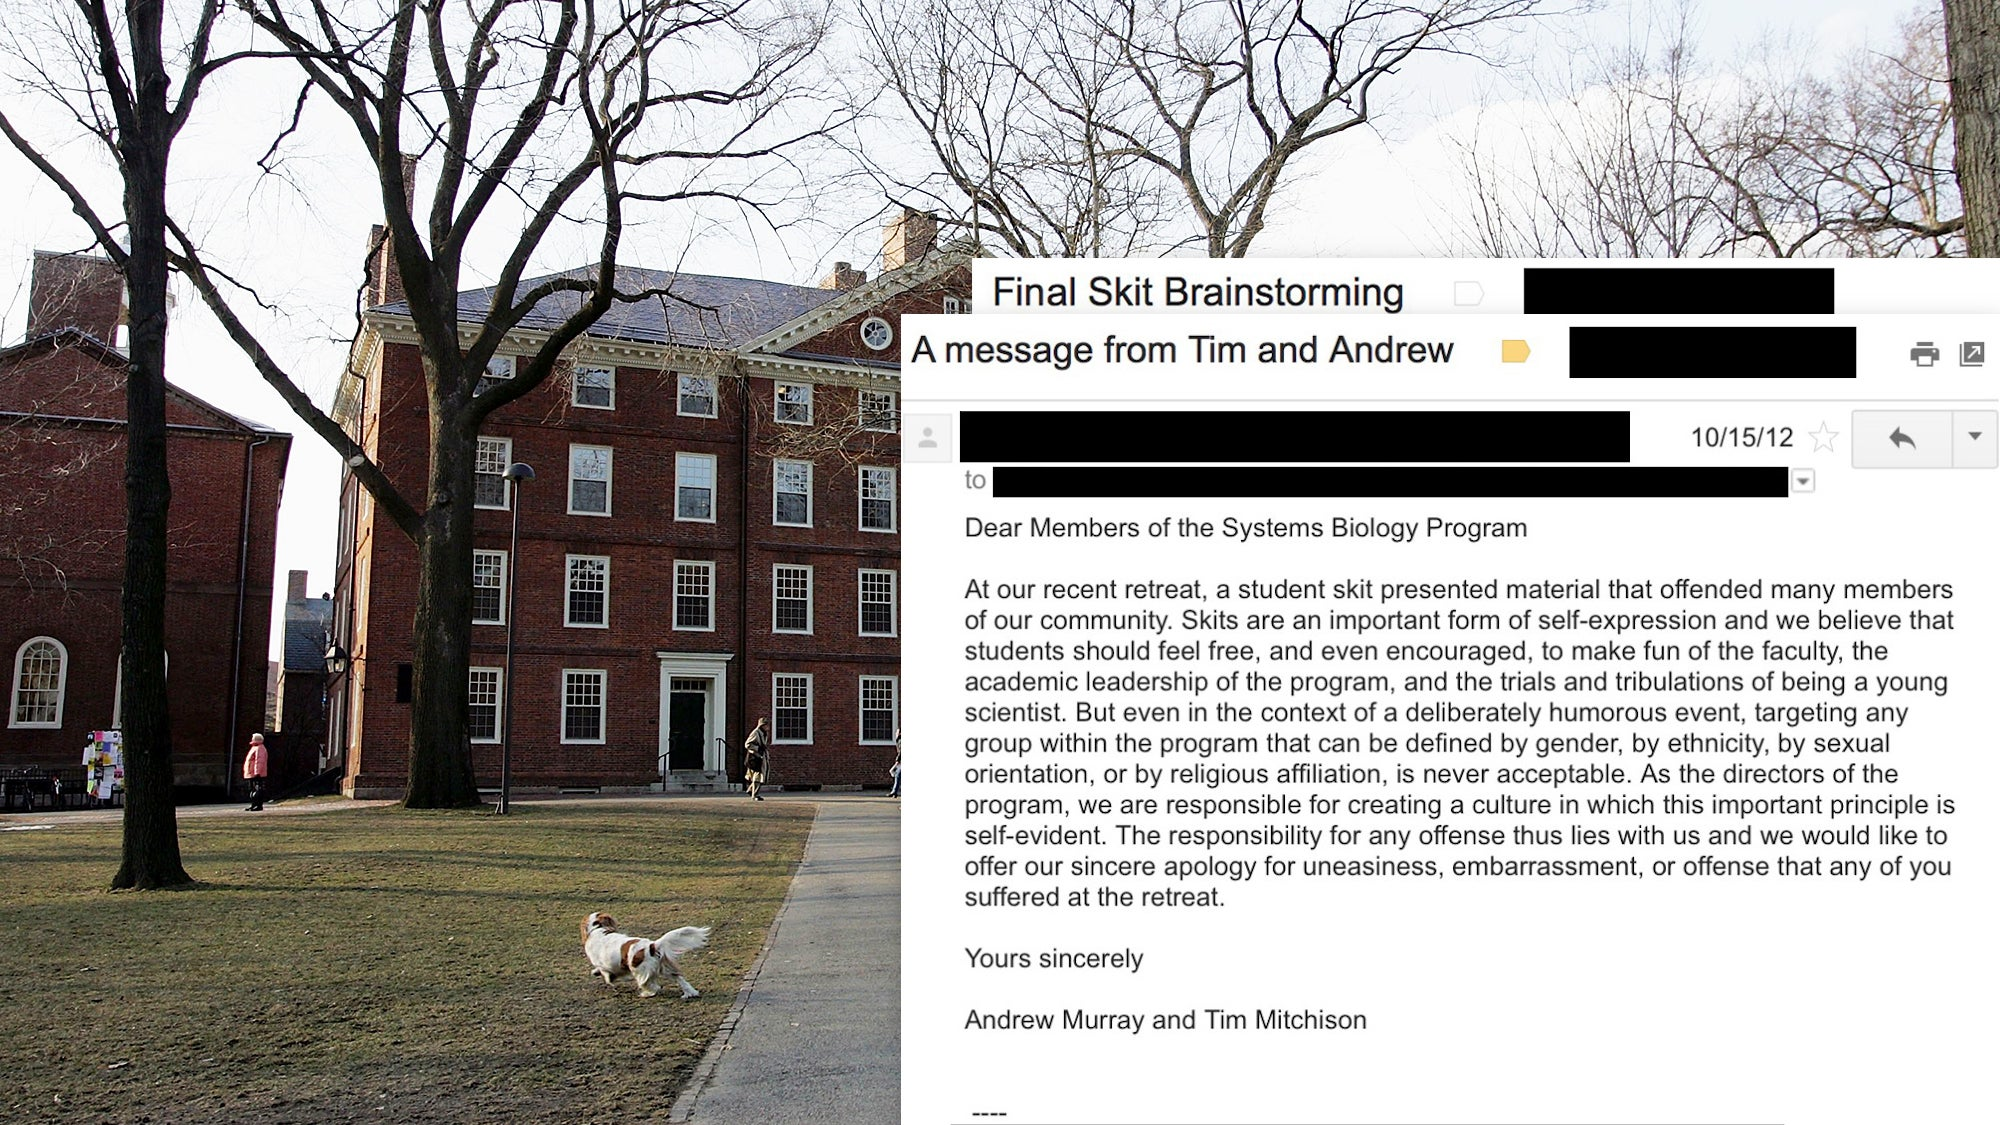 Fired Google Memo Writer Took Part In Controversial, 'Sexist' Skit While At Harvard For Which Administration Issued Formal Apology